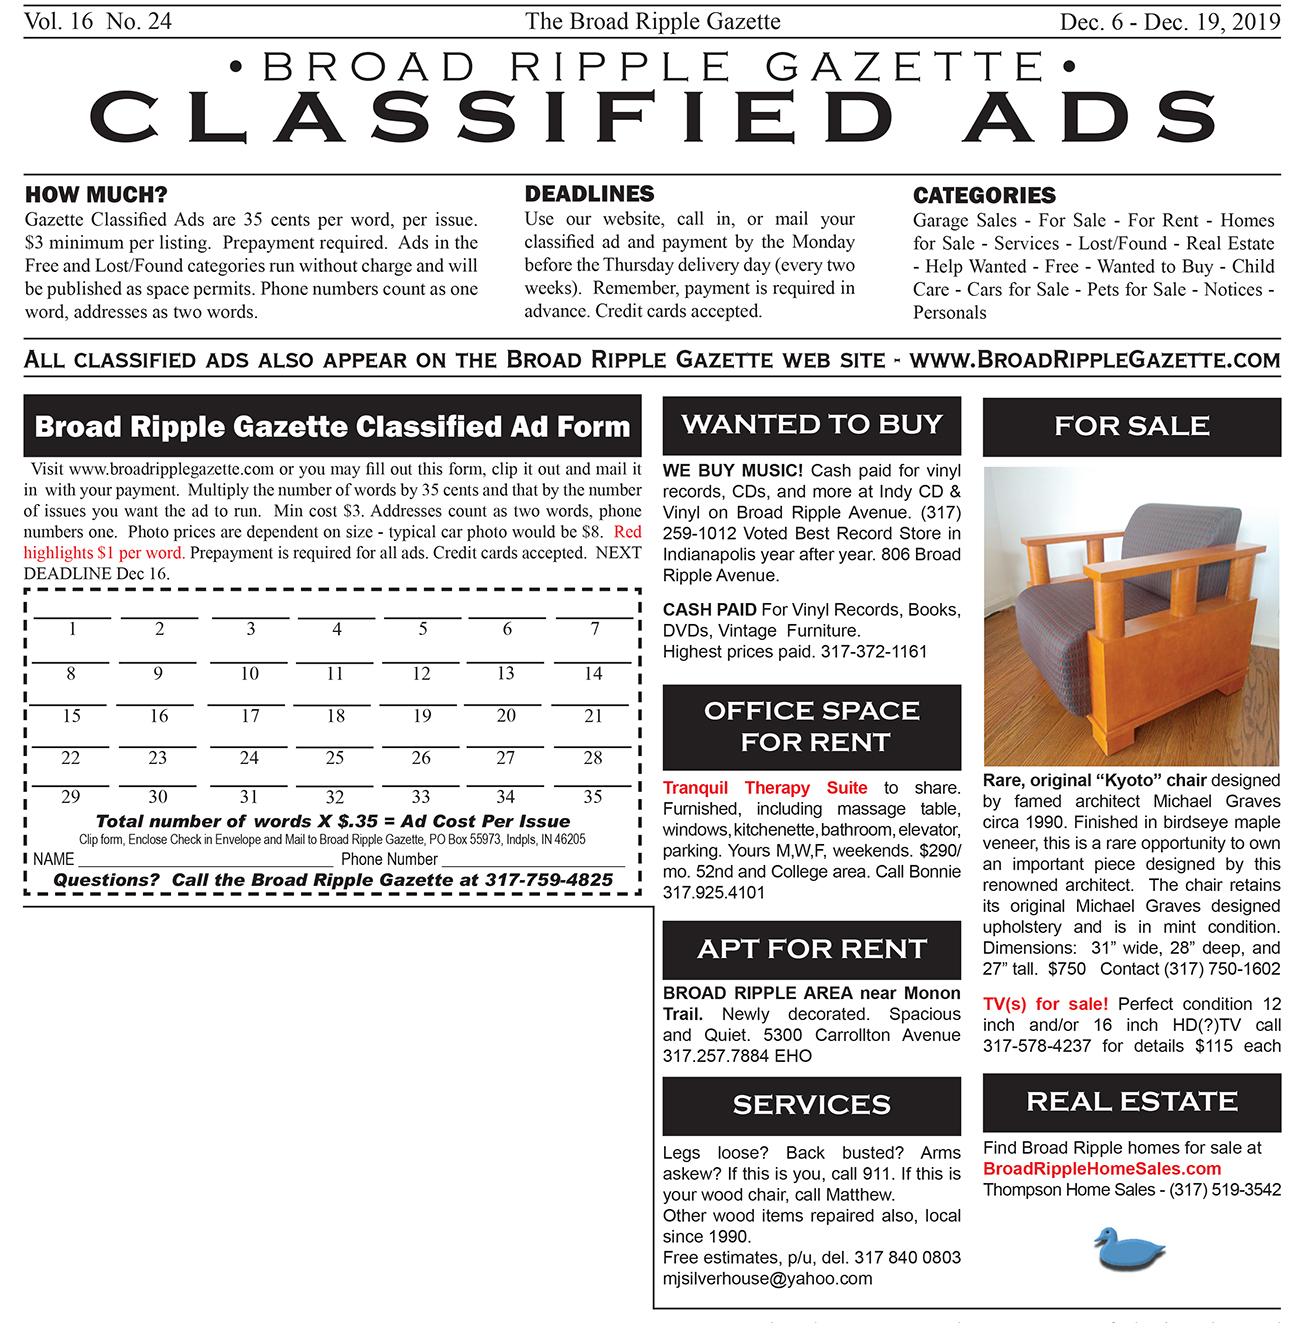 full sized classified